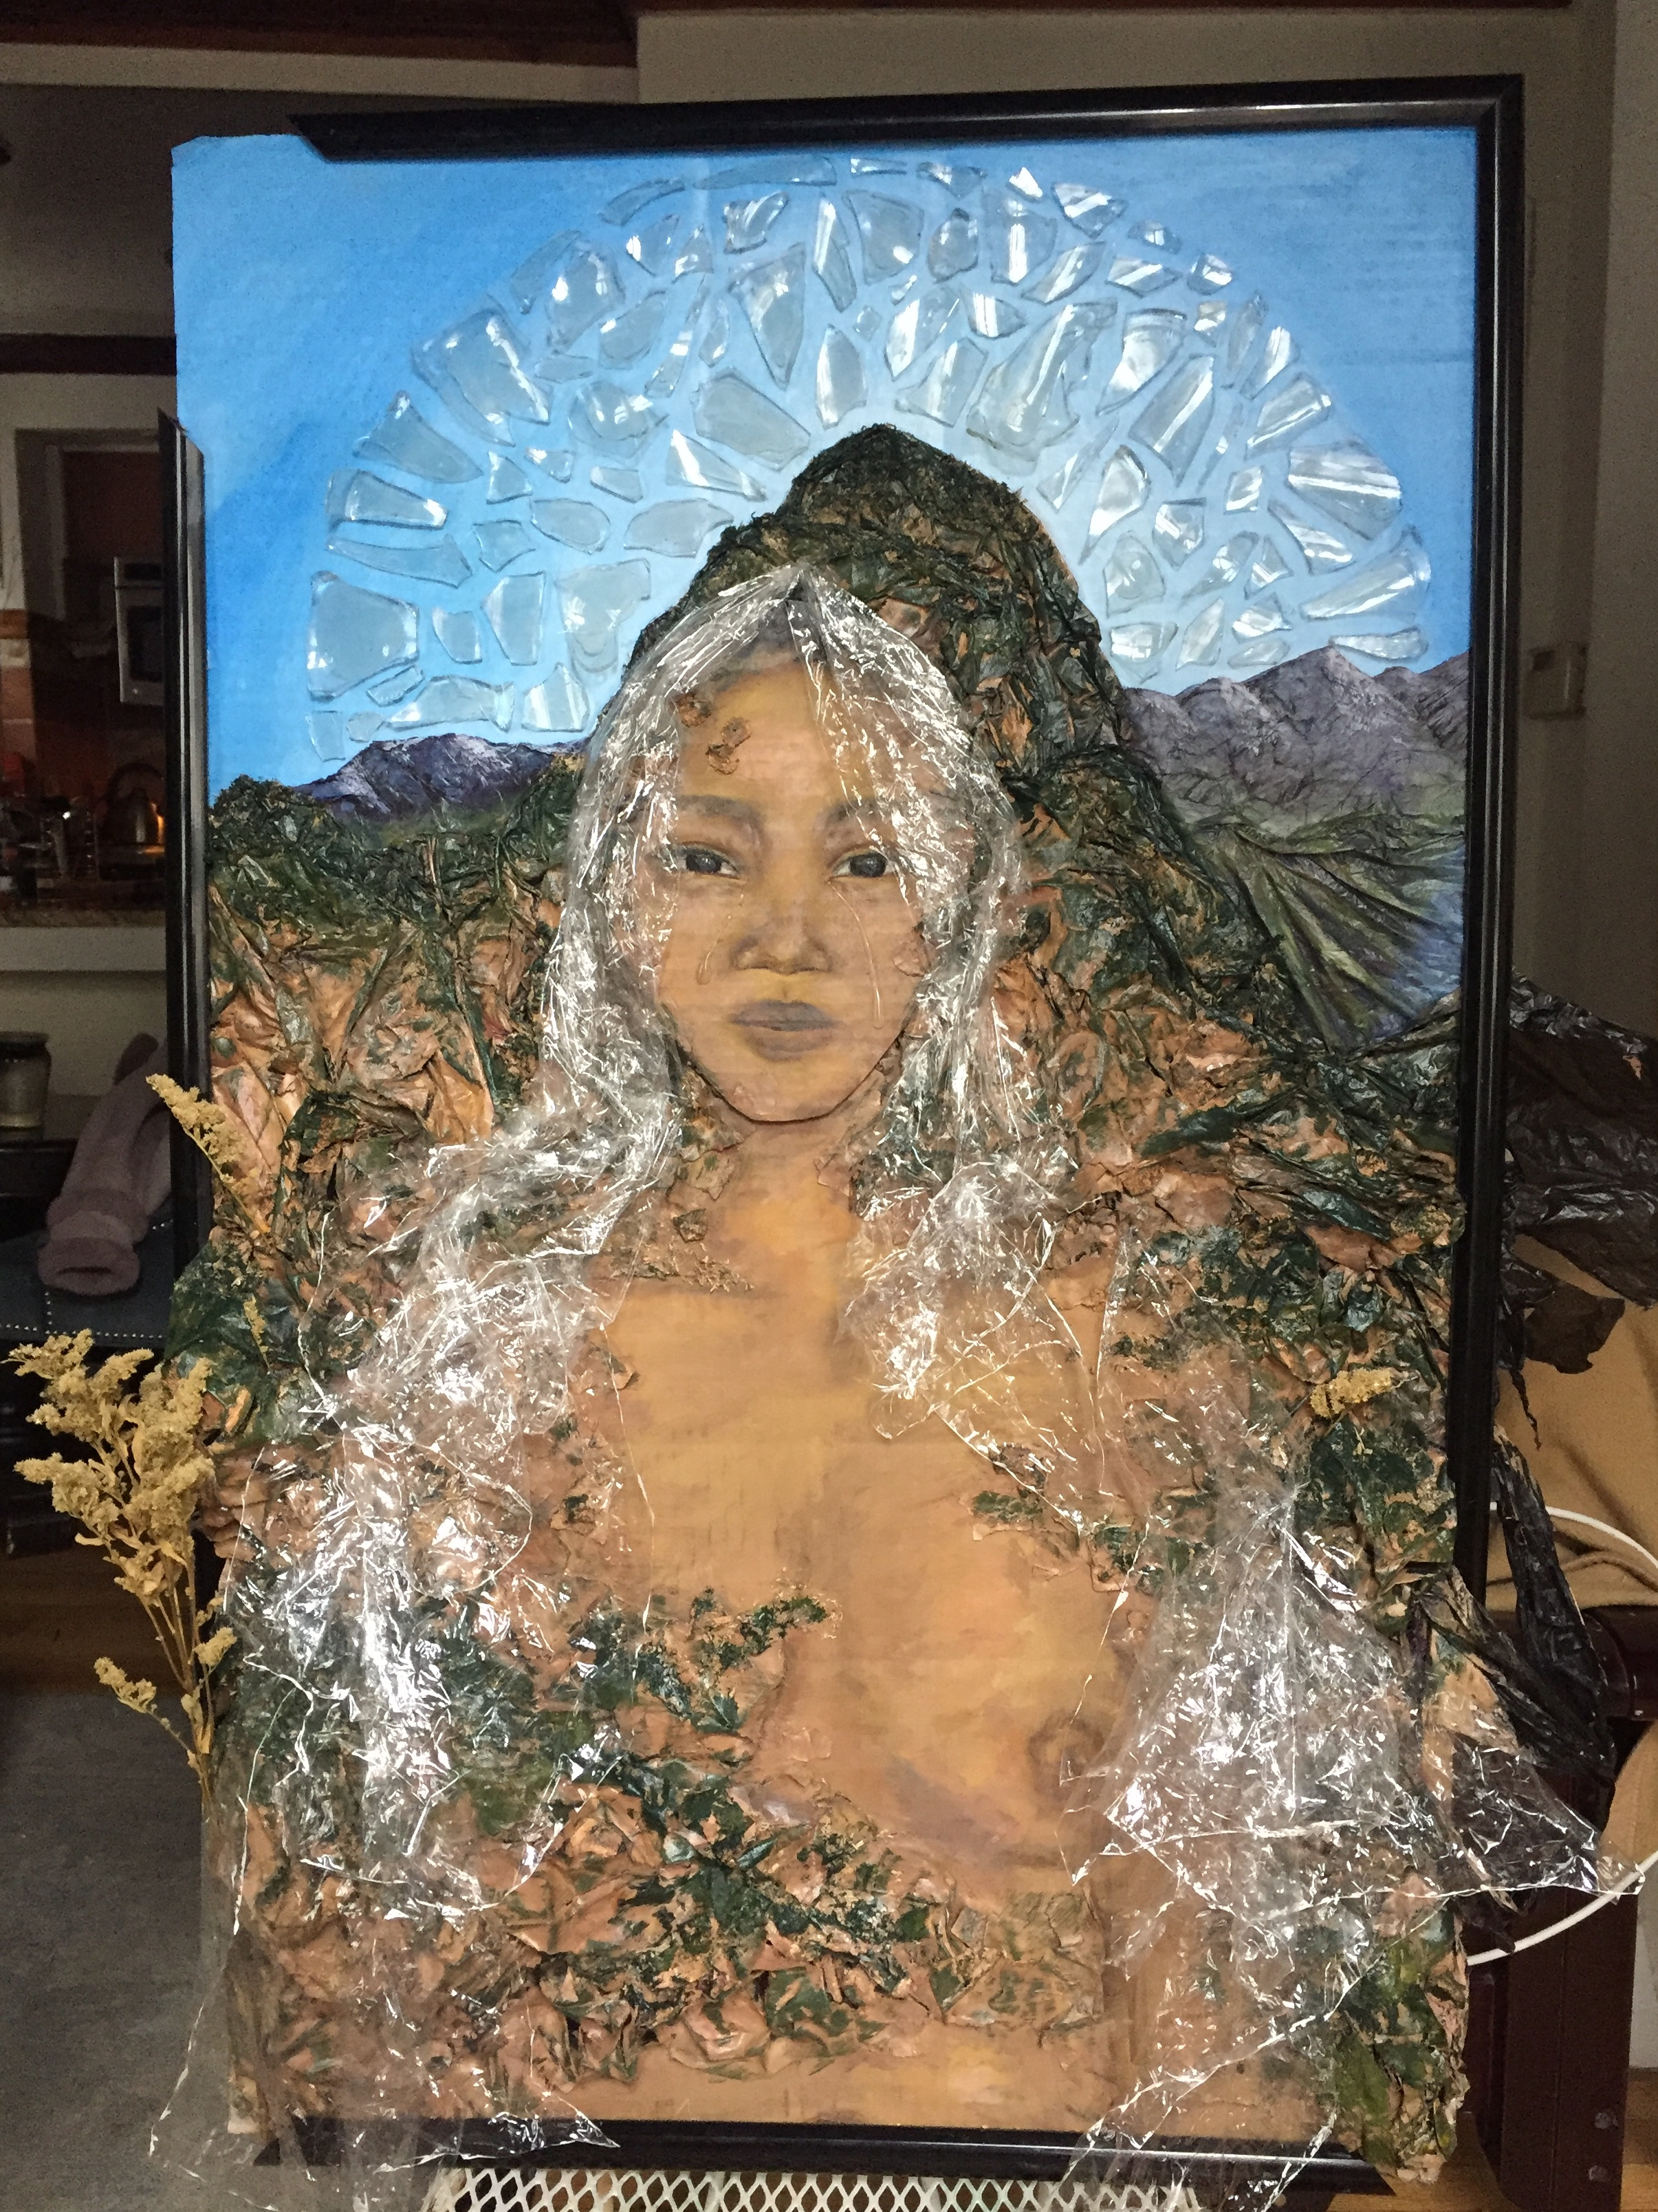 "Atabey - (2019). Cardboard, plastic bags, glass, cork, dried flowers, dirt, chalk pastel, acrylic paint.""Atabey"" means 'Mother Earth' in the language of the Taíno Indians (the indigenous people that inhabited Cuba, Dominican Republic, Haiti, Jamaica, and Puerto Rico). We used recycled materials including paper and plastic bags, cardboard and glass, creating this piece to embody the goddess. This piece was displayed at the Eco-Art Showcase in Brooklyn.Read more about the showcase: https://www.sustainthemag.com/Co-created by Bianca Williams"